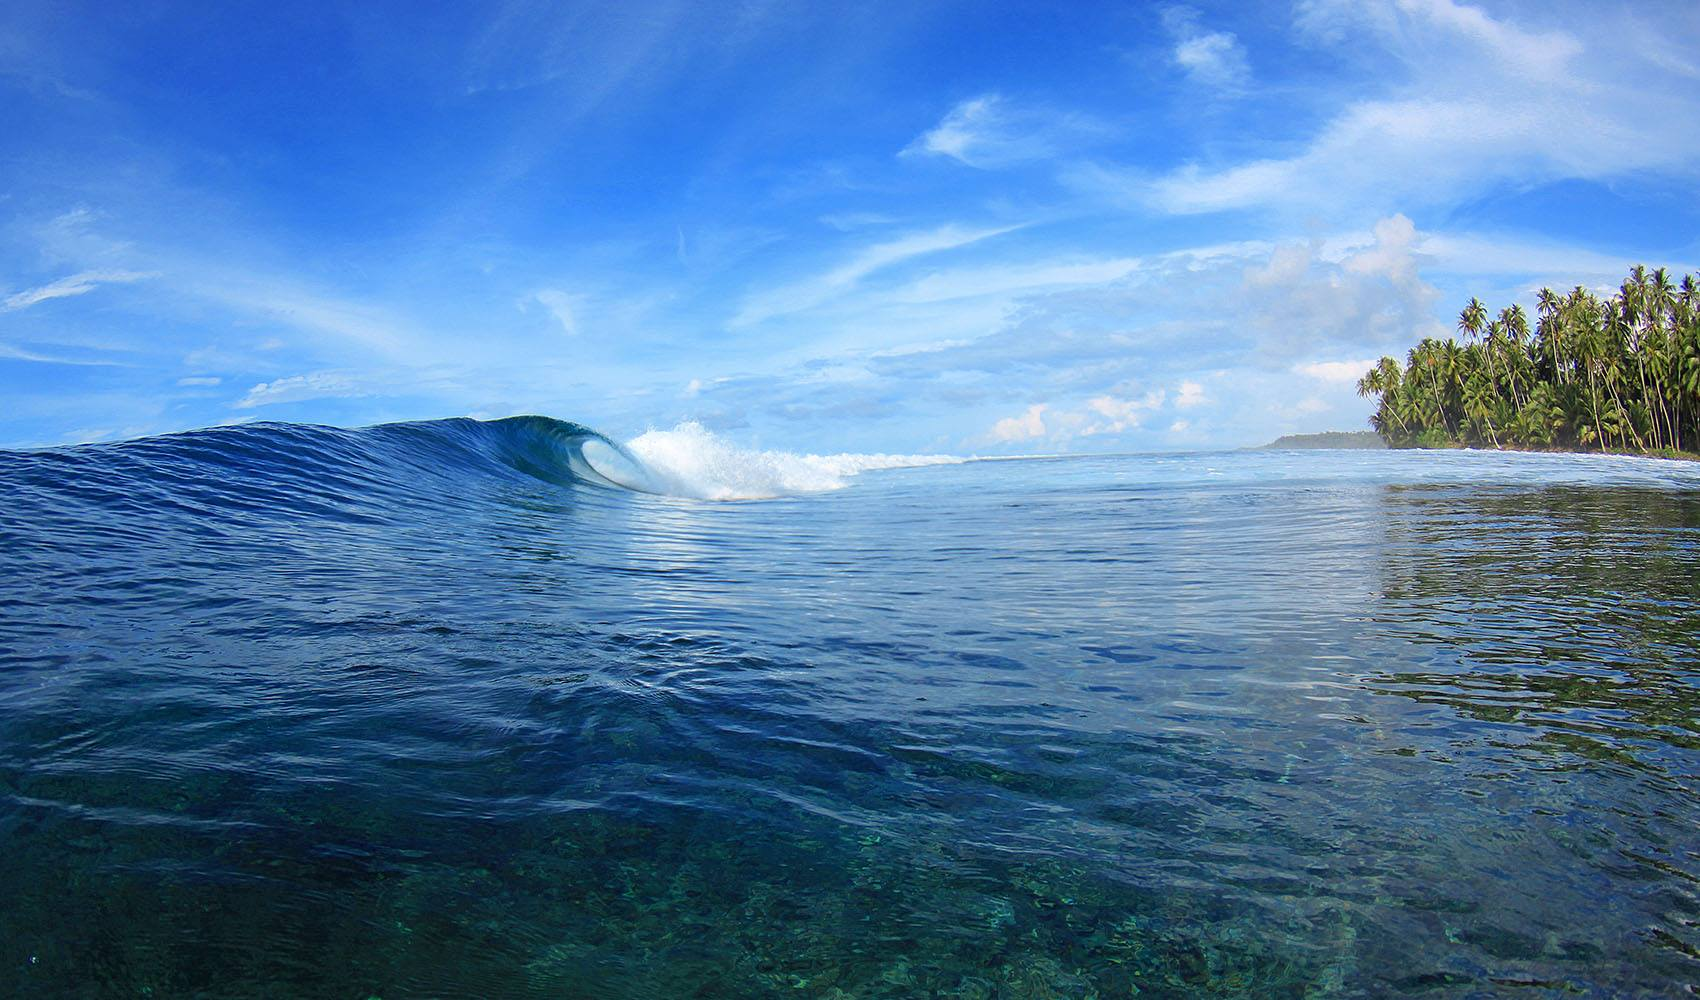 Telo_Island_Lodge_Surf_Indonesia_clear_water.jpg